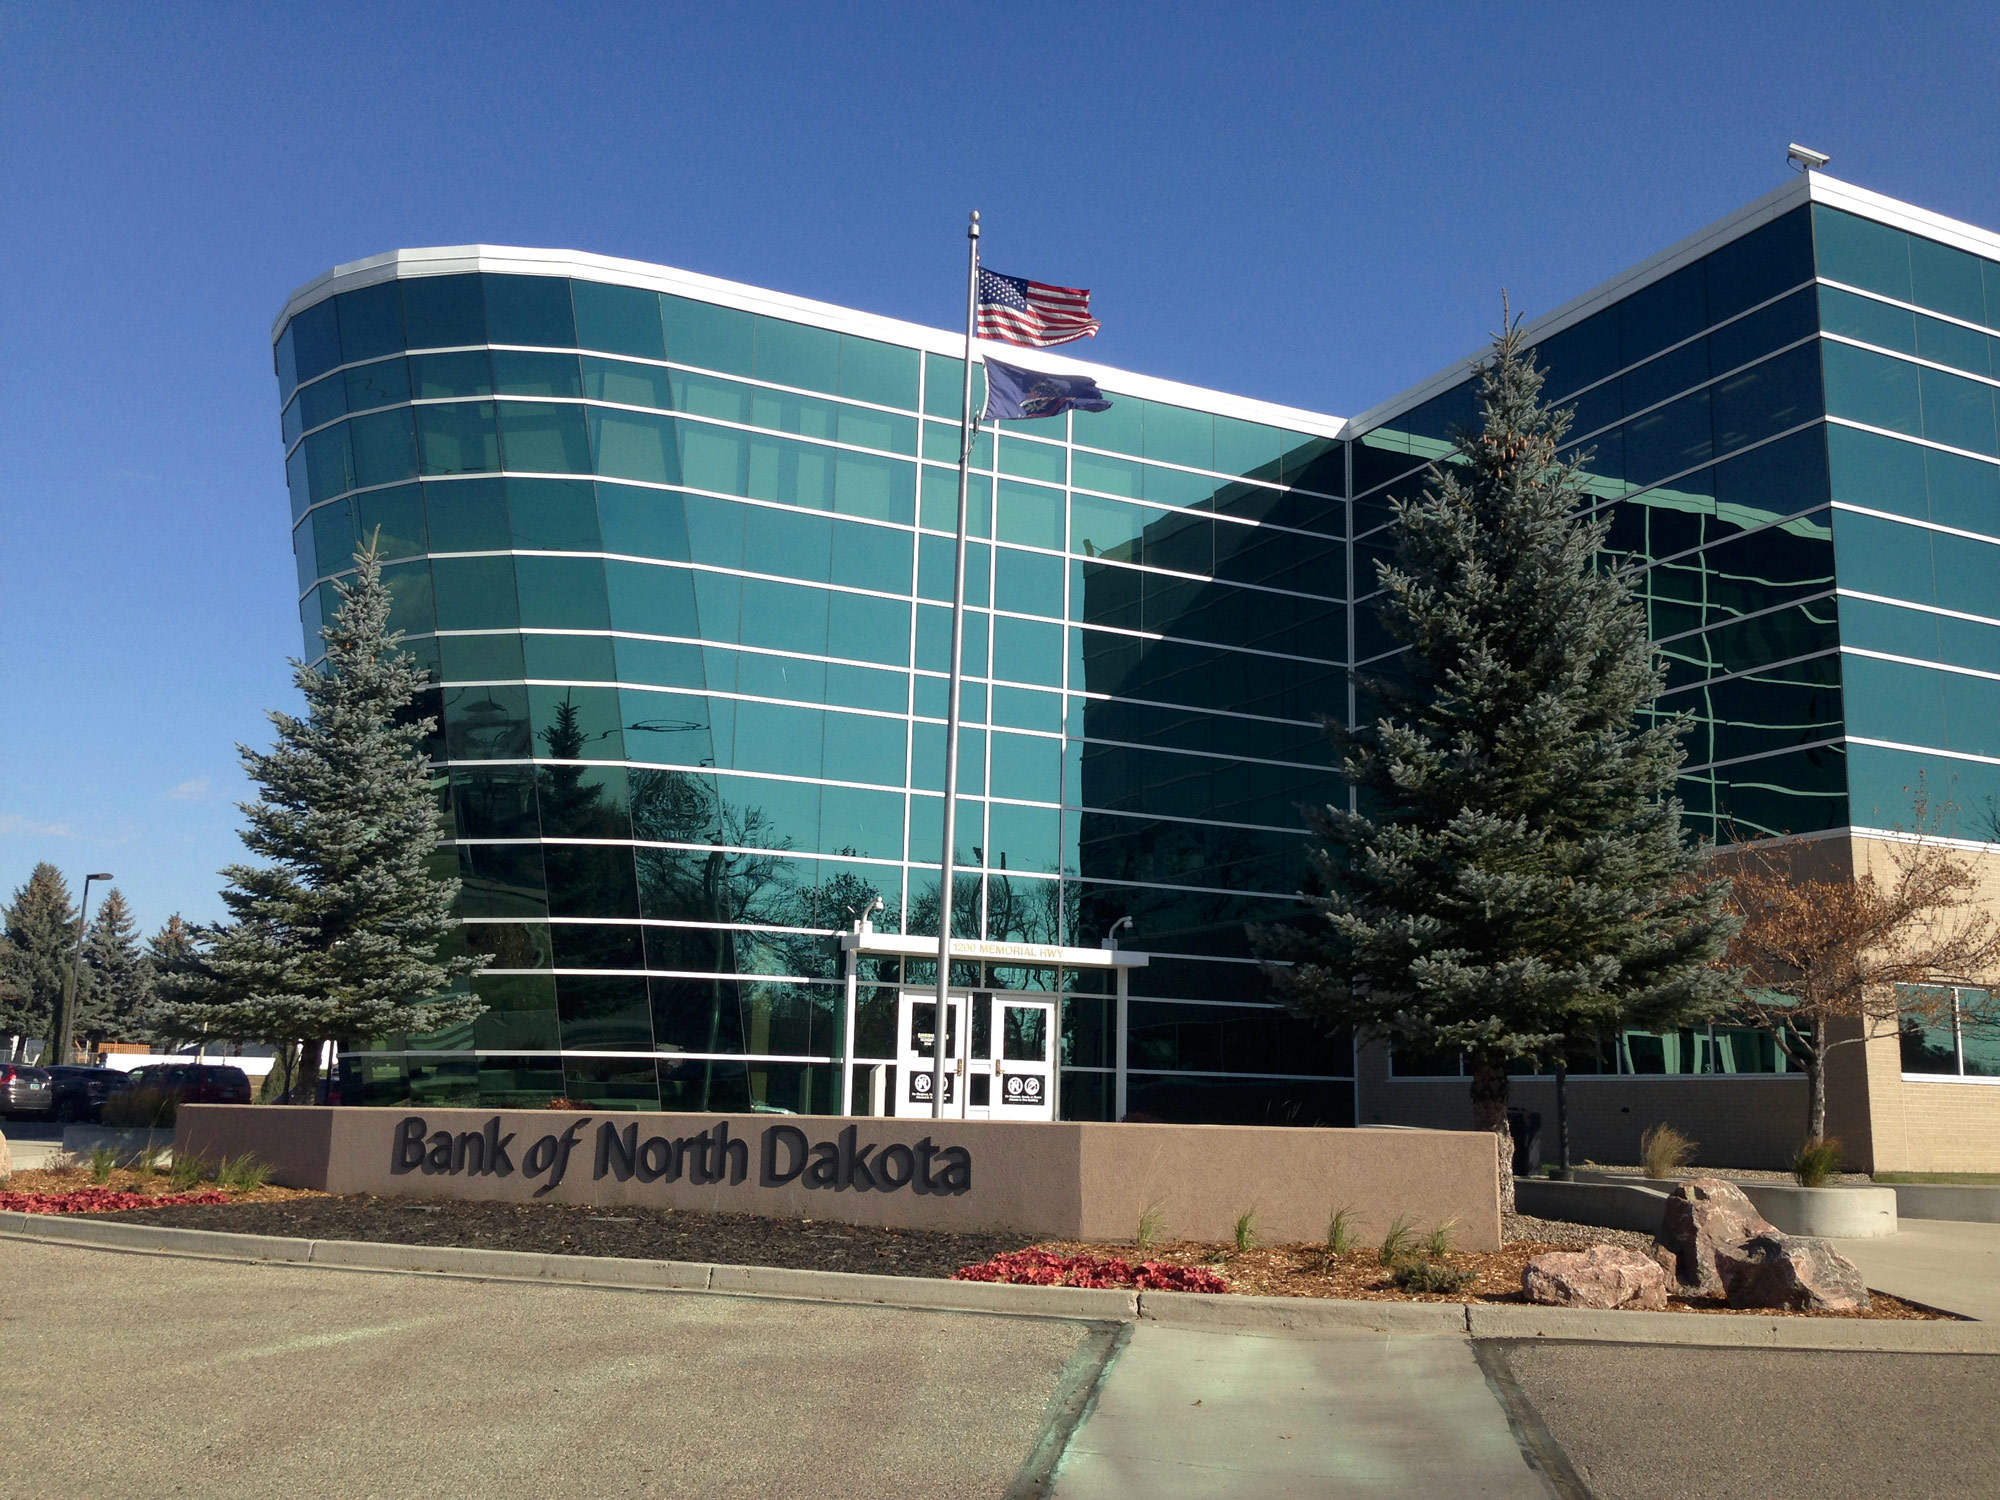 Bank of North Dakota, the only state-run bank in the US